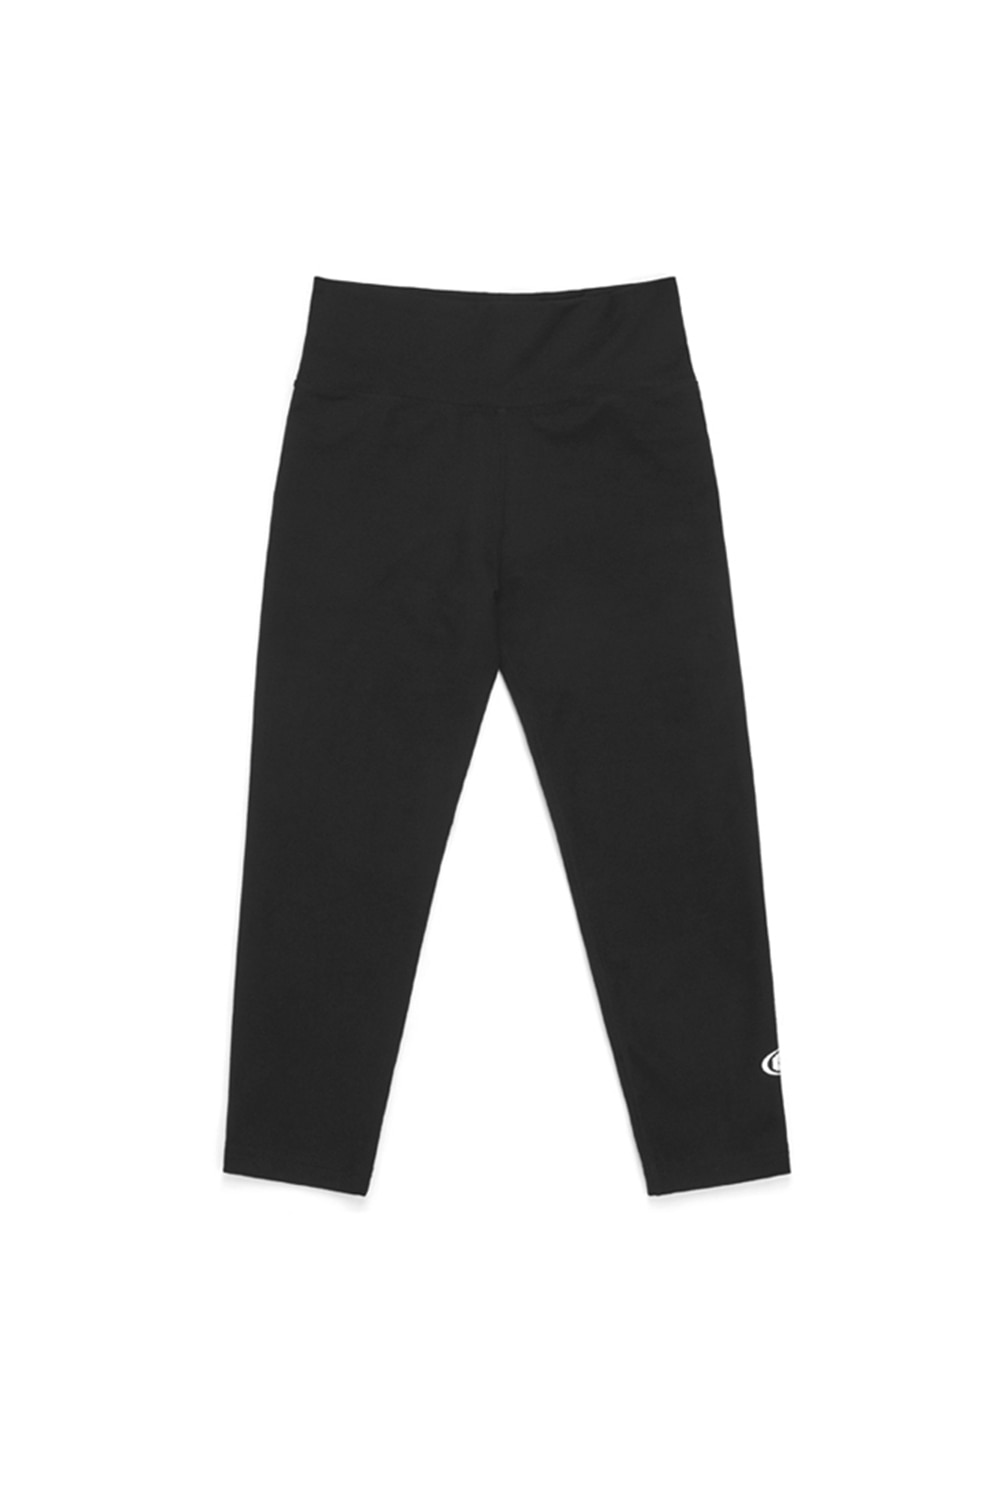 TRAINING CROPS_black